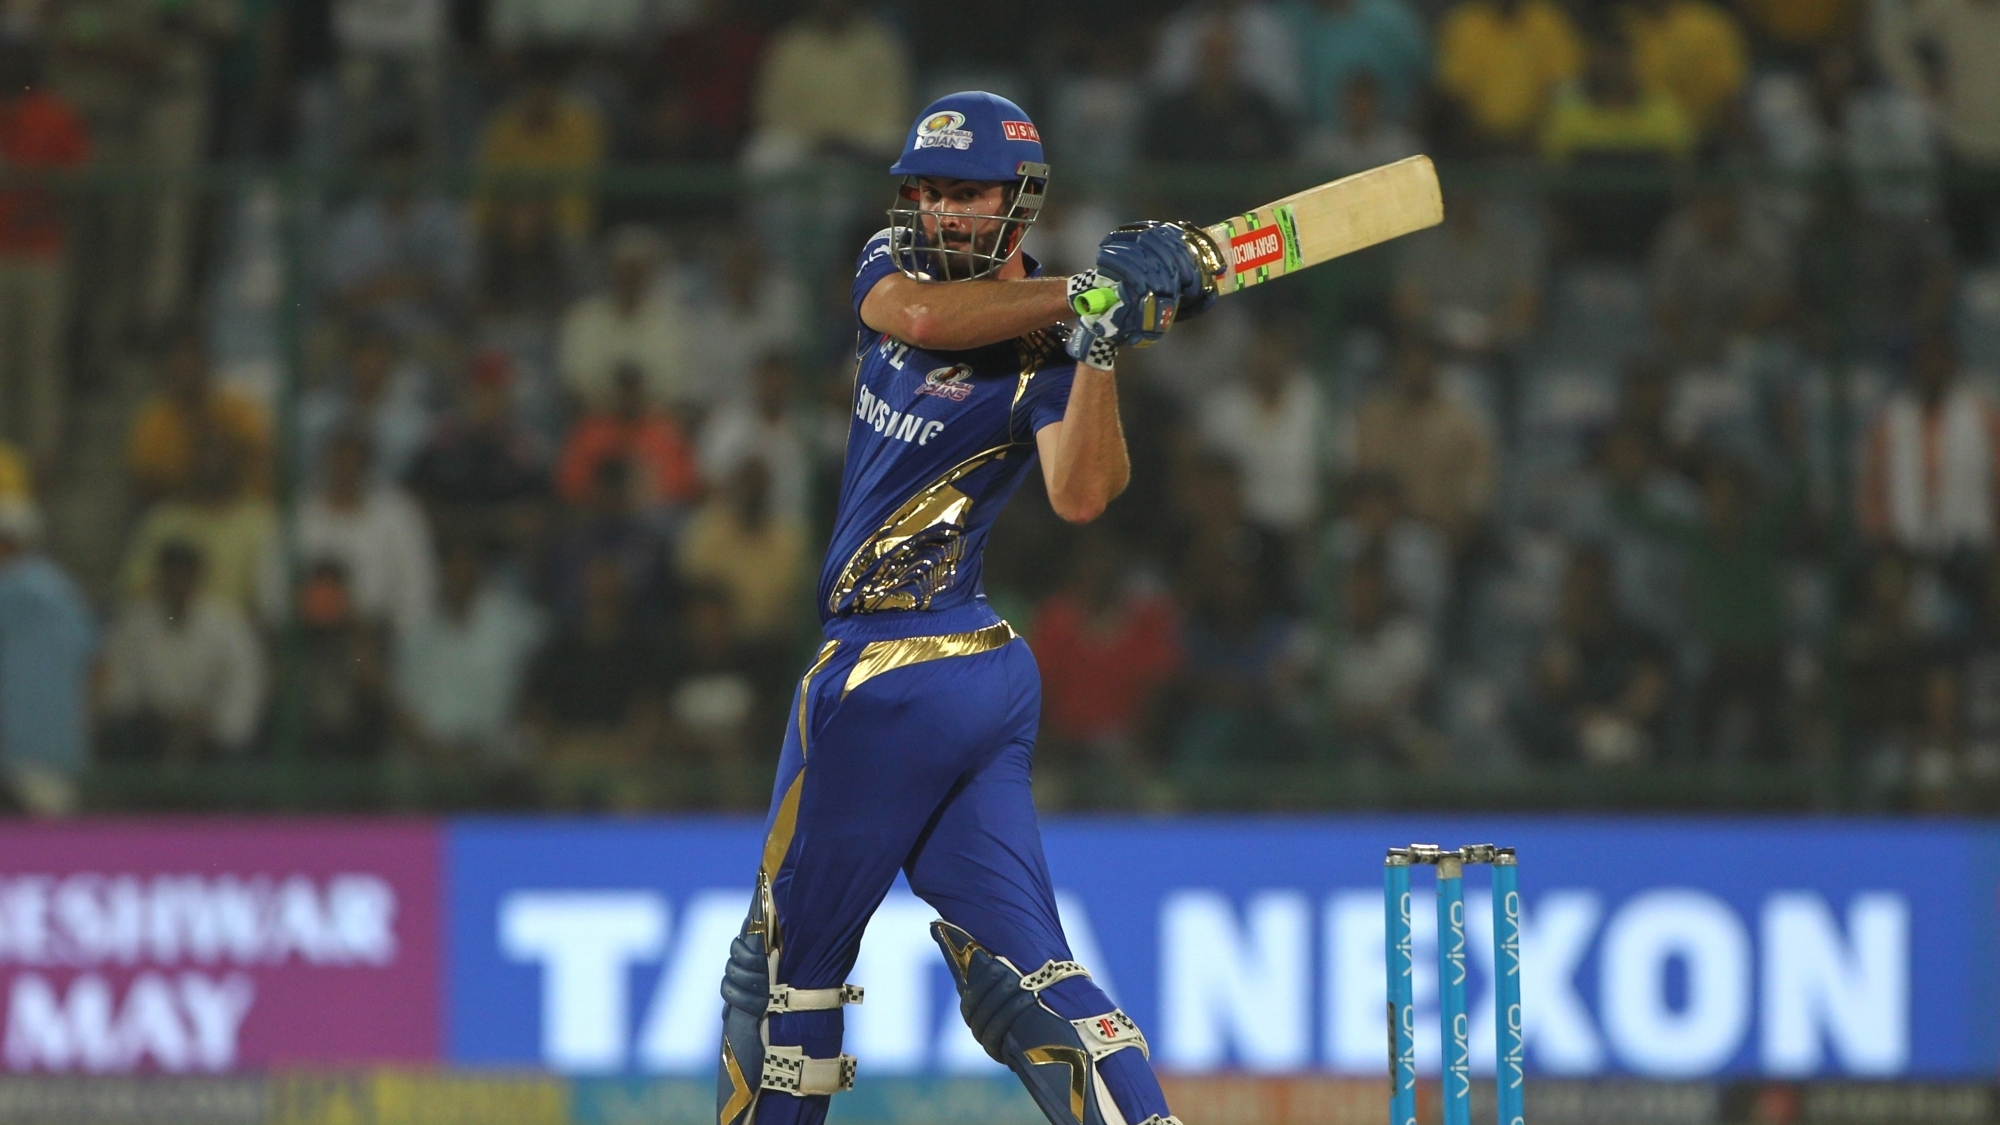 IPL 2018: The target against DD was more or less achievable, says Ben Cutting